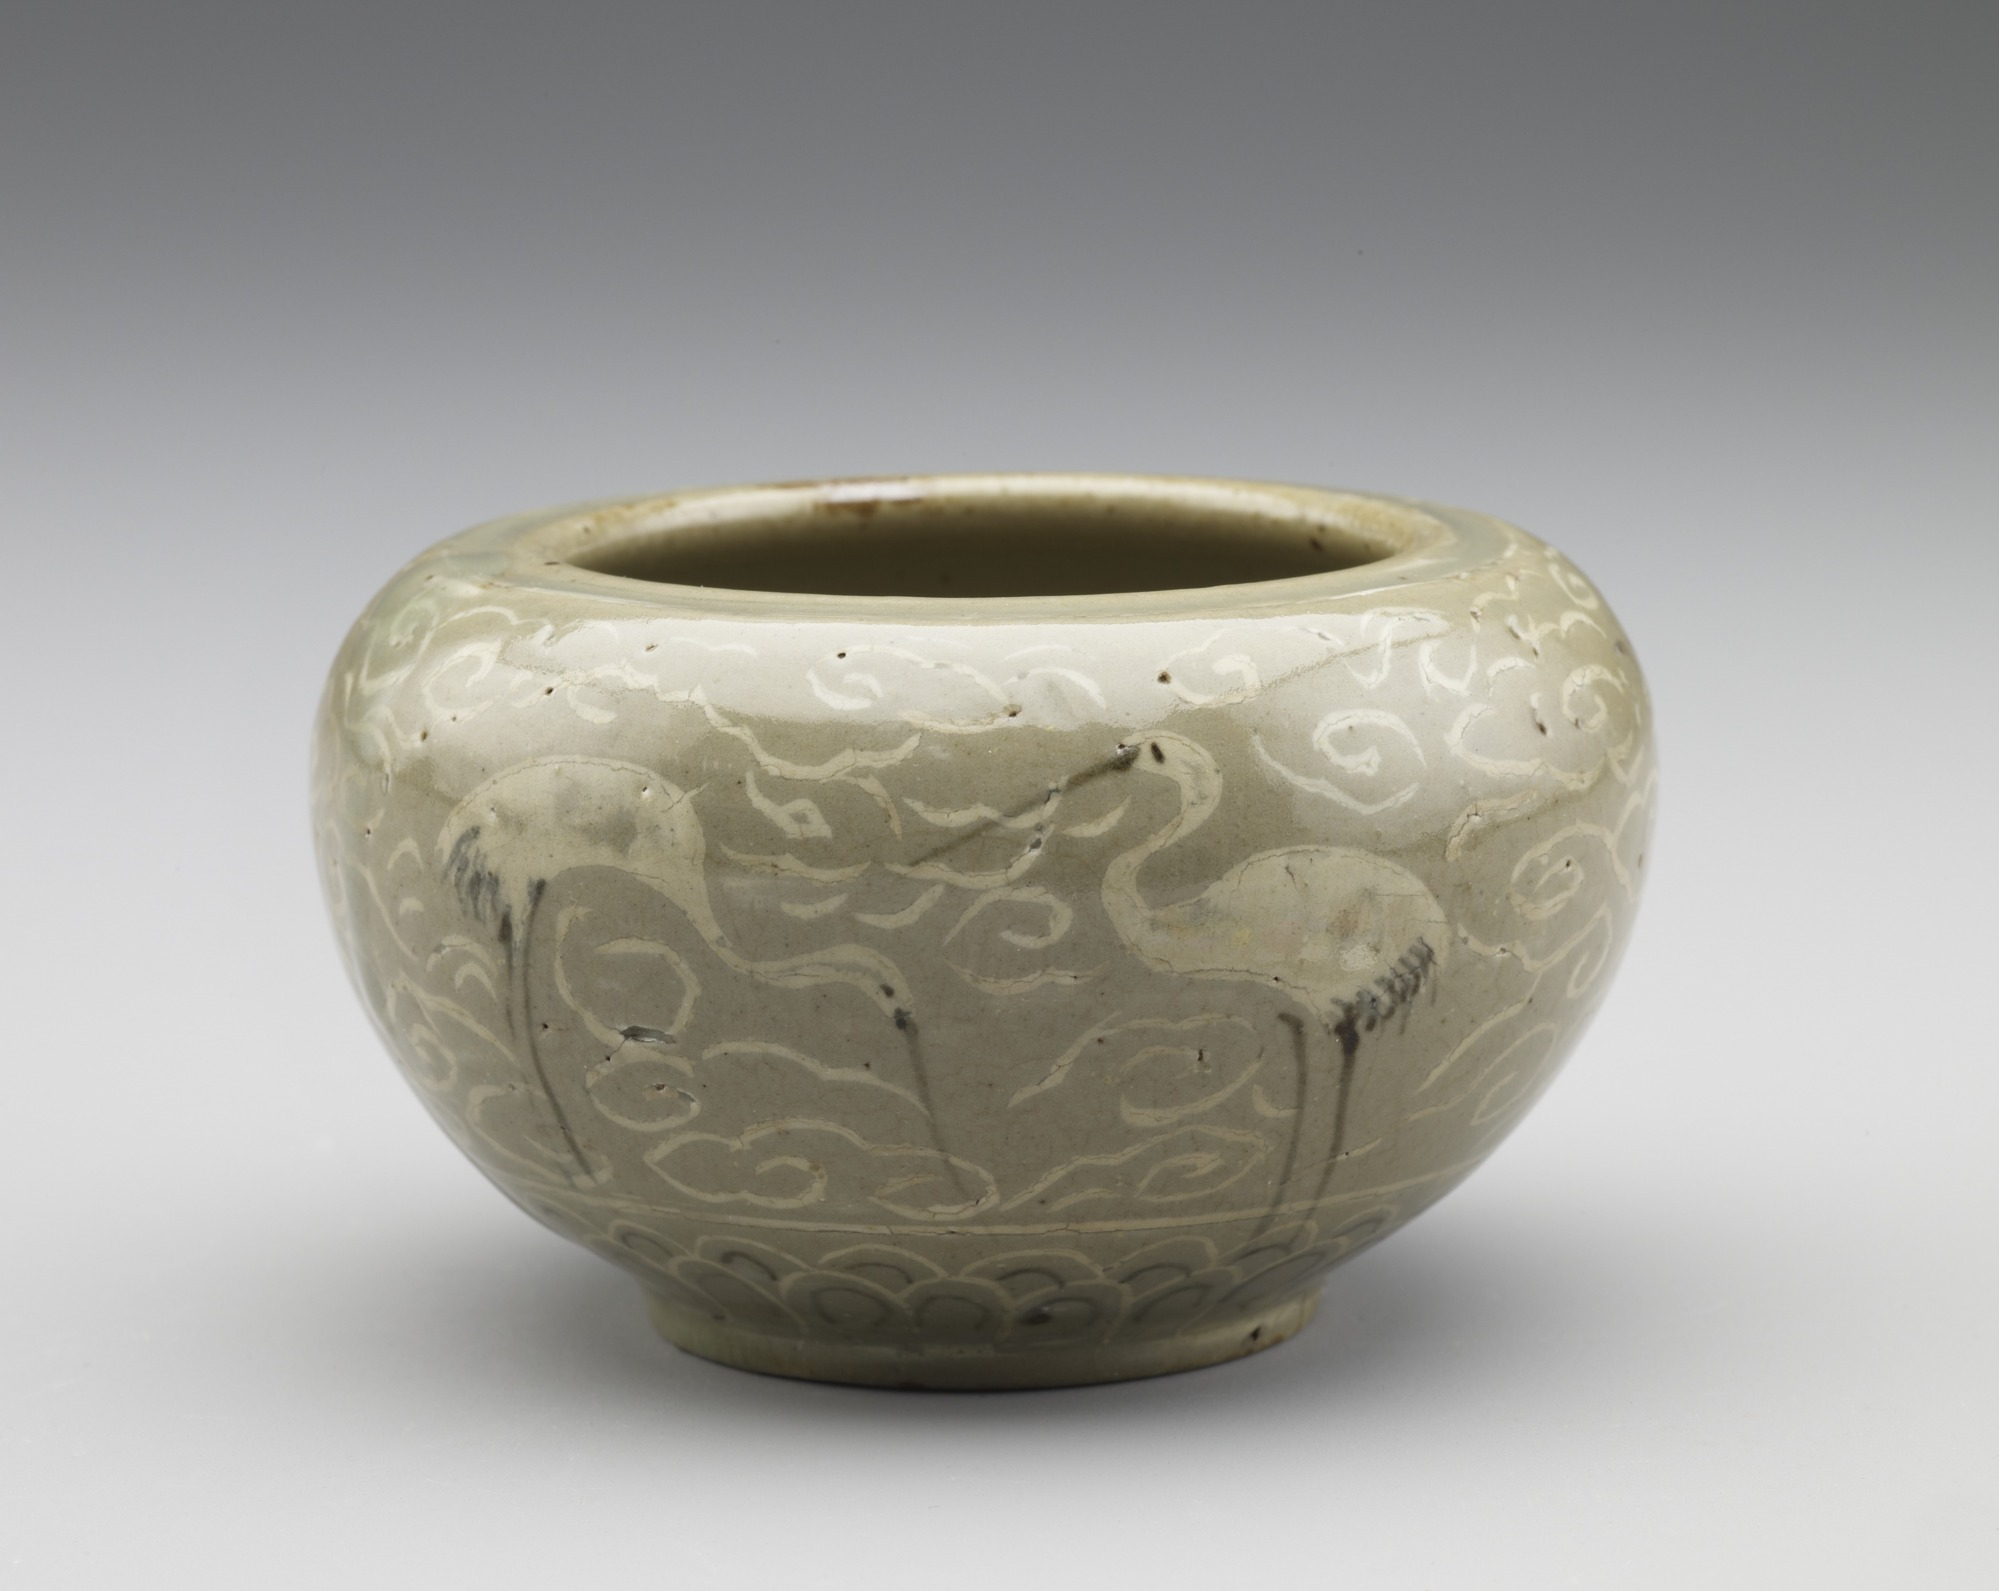 Jar in style of Goryeo celadon